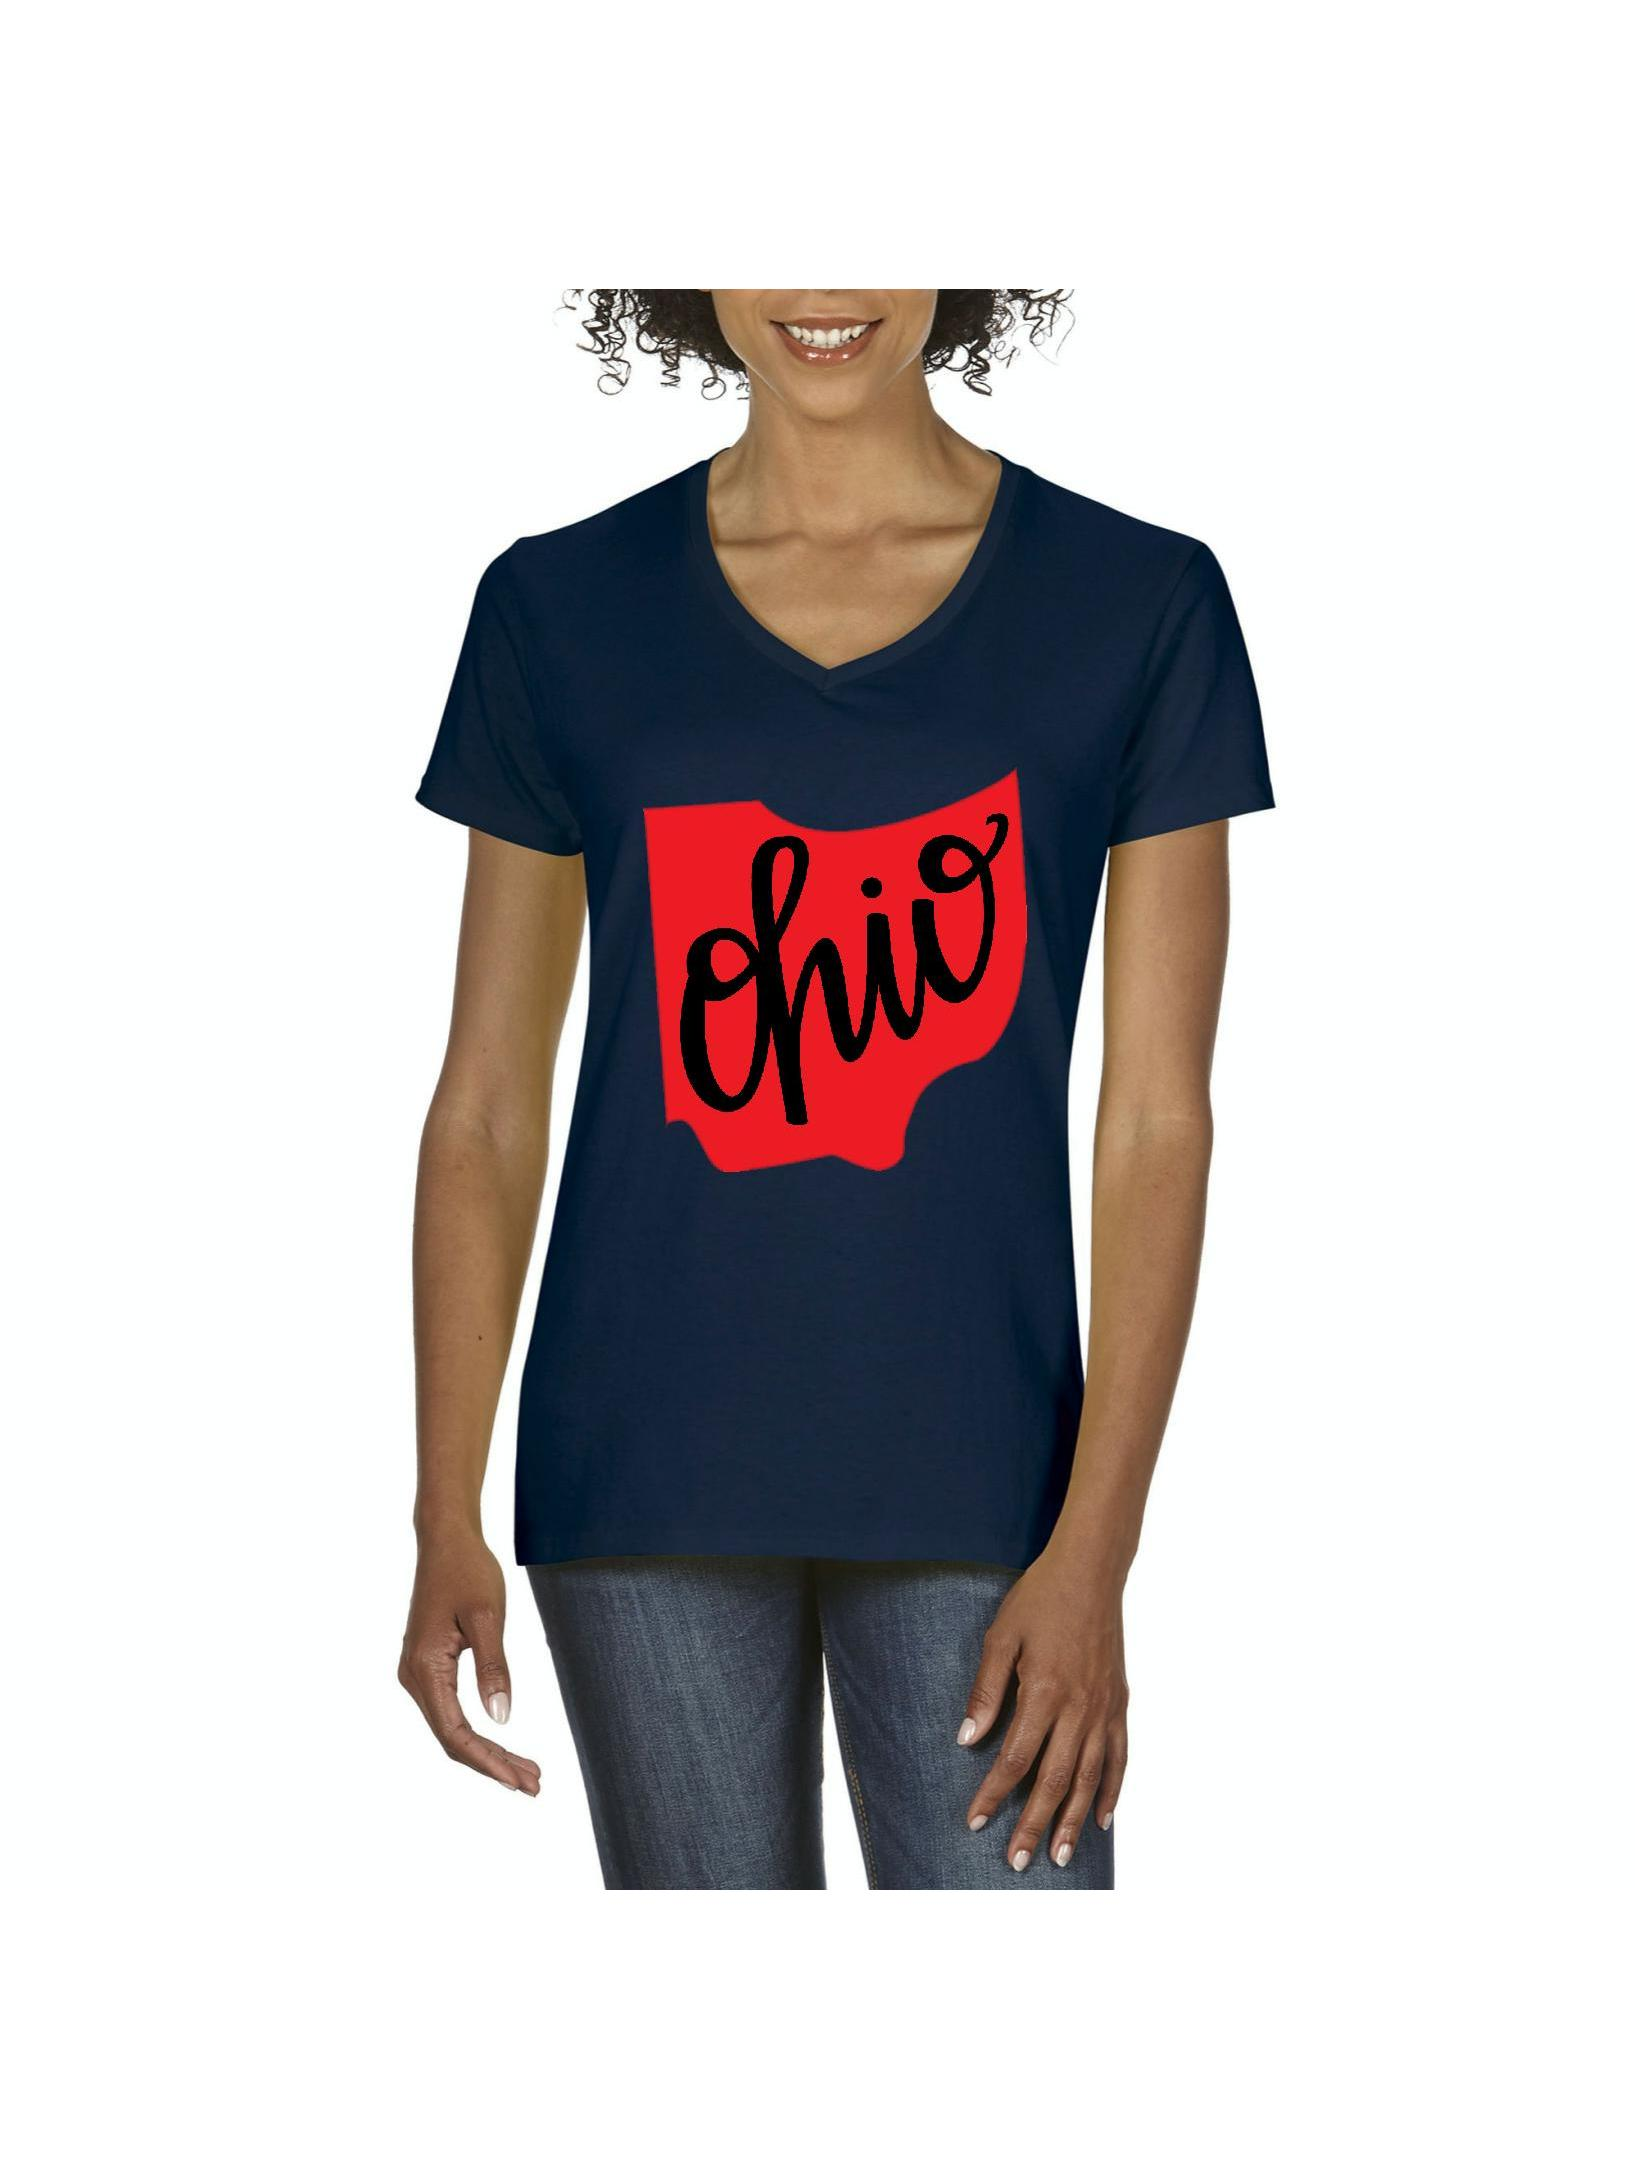 Girls Short Sleeve Retro Style North Carolina Silhouette T-Shirts XS-XL Casual Blouse Clothes